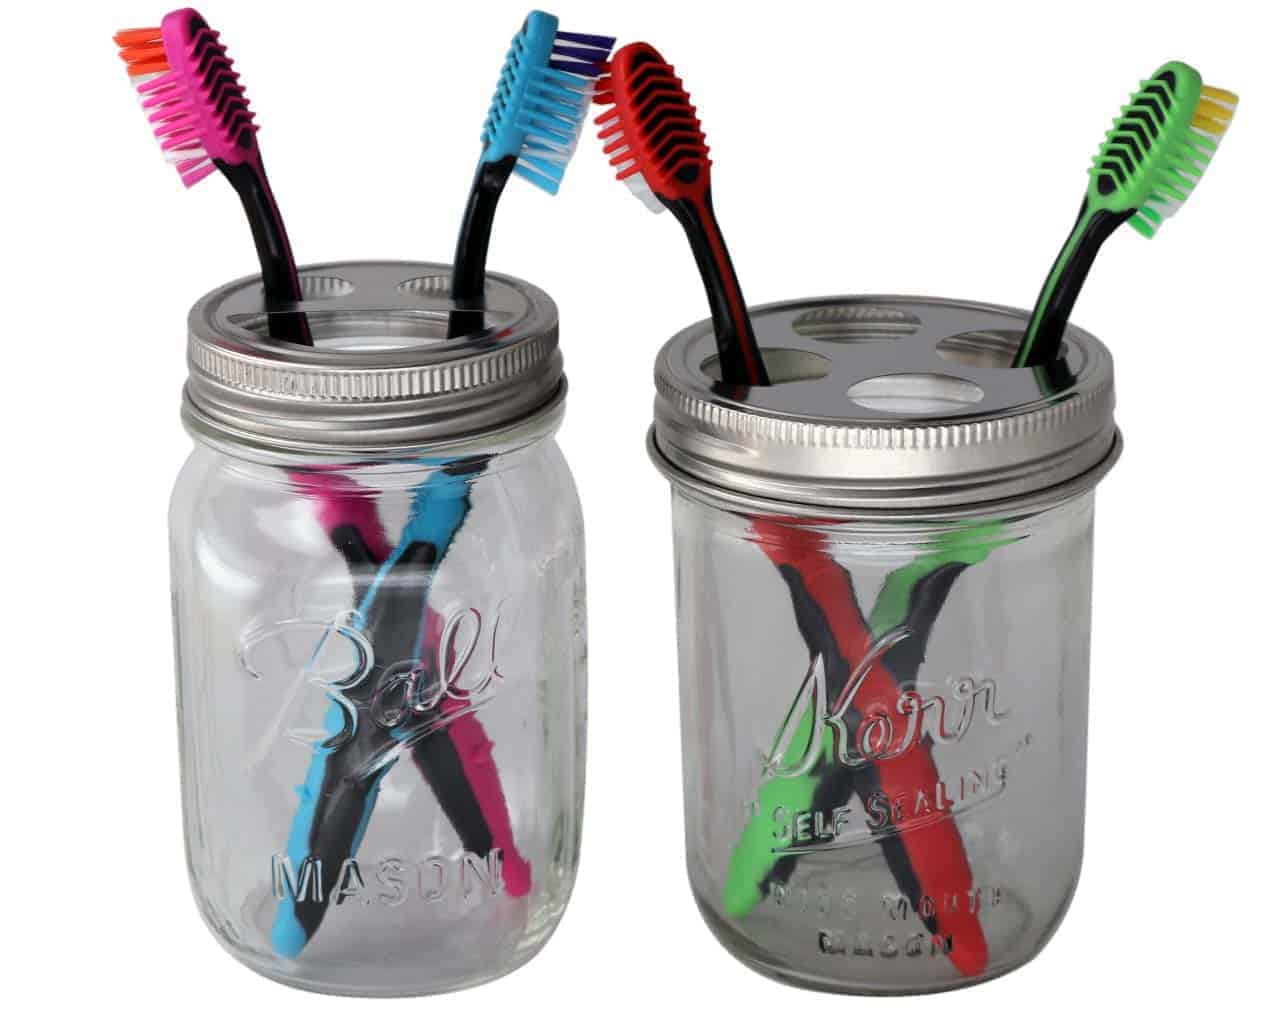 Removable lid has 3 compartments for brushes and tongue cleaners White toothbrush holder works with any bathroom decor Store your toothbrushes and dental tools in style with the Frosted Toothbrush Holder from Room Essentials™.